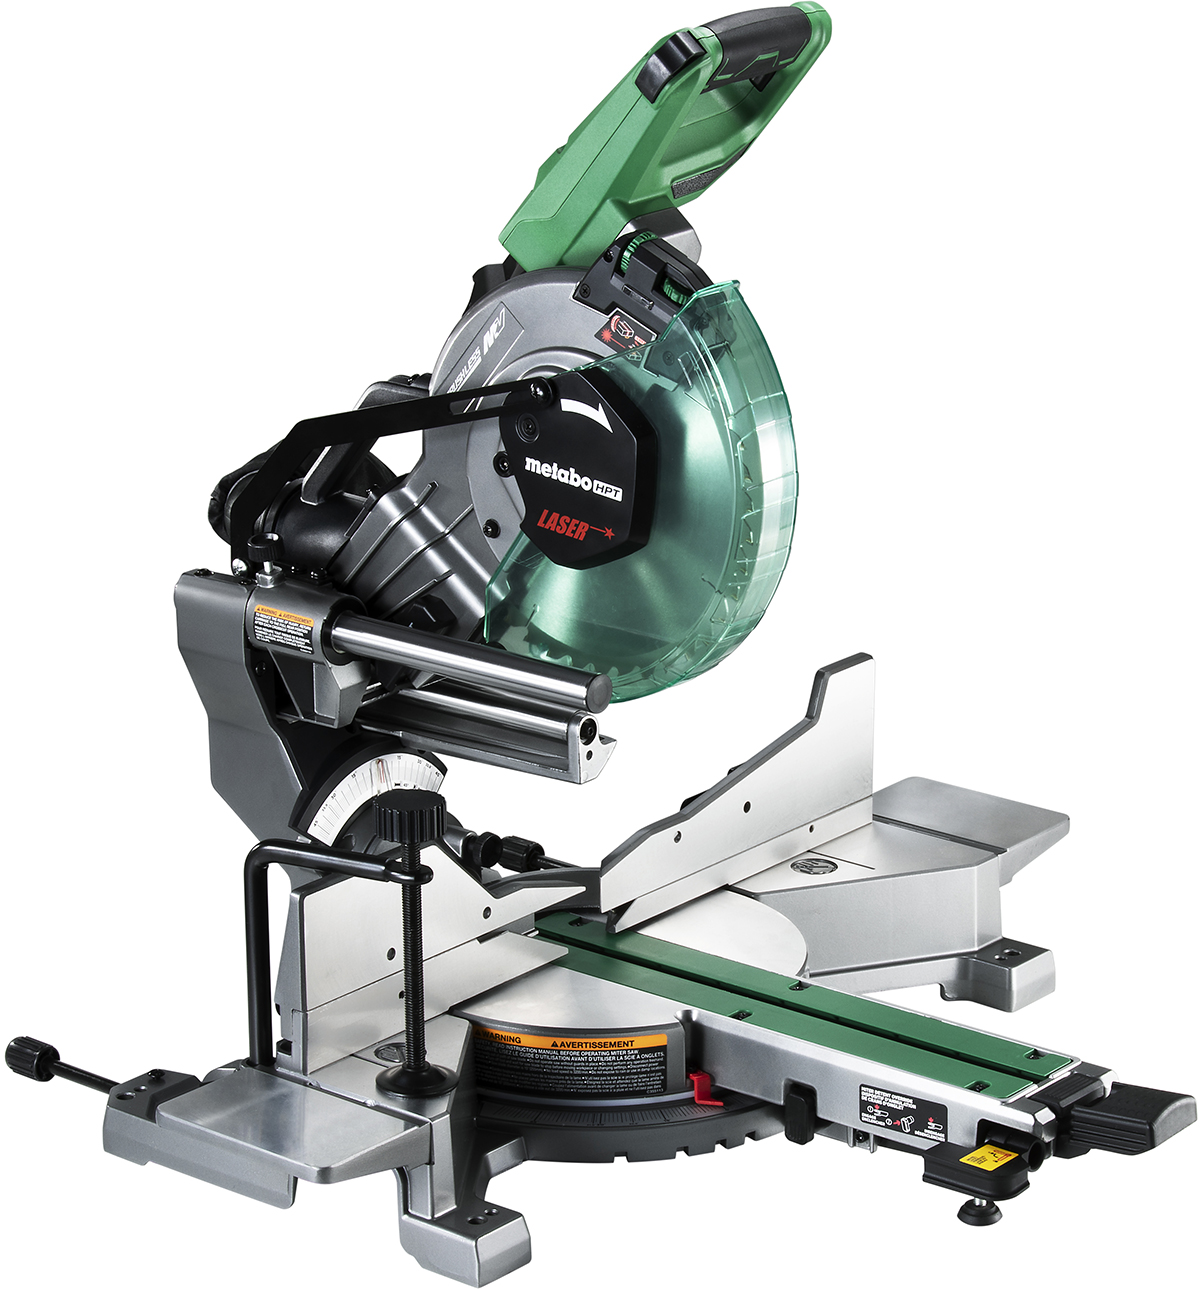 10 Inch Cordless Miter Saw